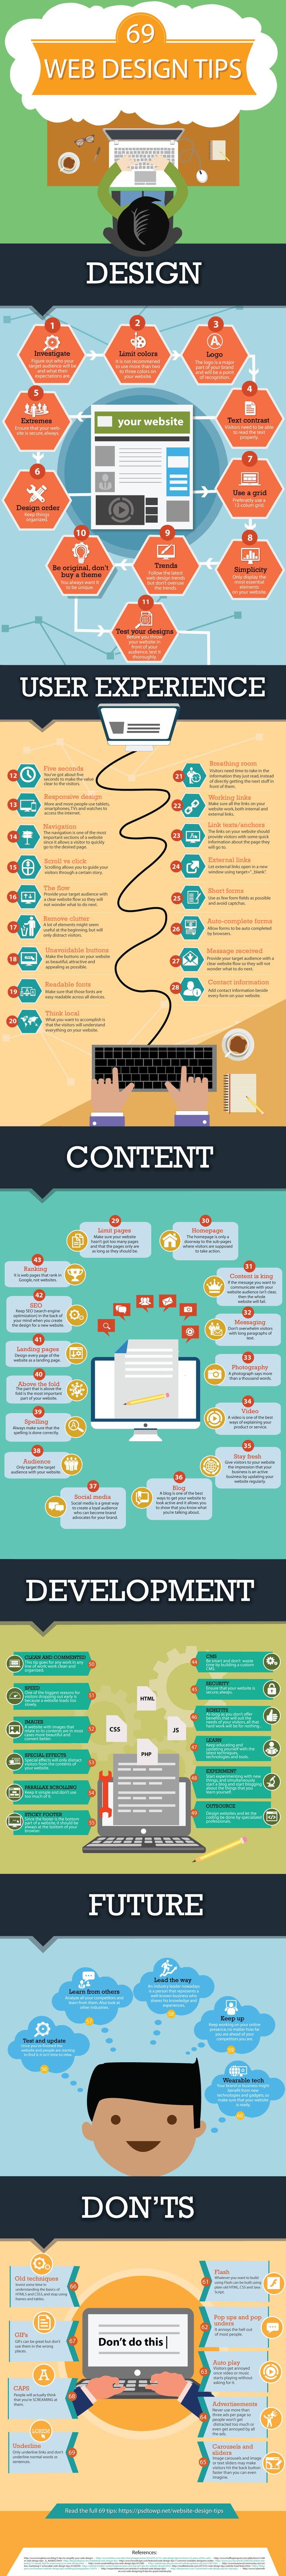 Web Design Tips  This infographic will remind you about the important web design do's and don'ts when creating websites. There are tips in this infographic for every level of expertise and for every part of the website design and development process.